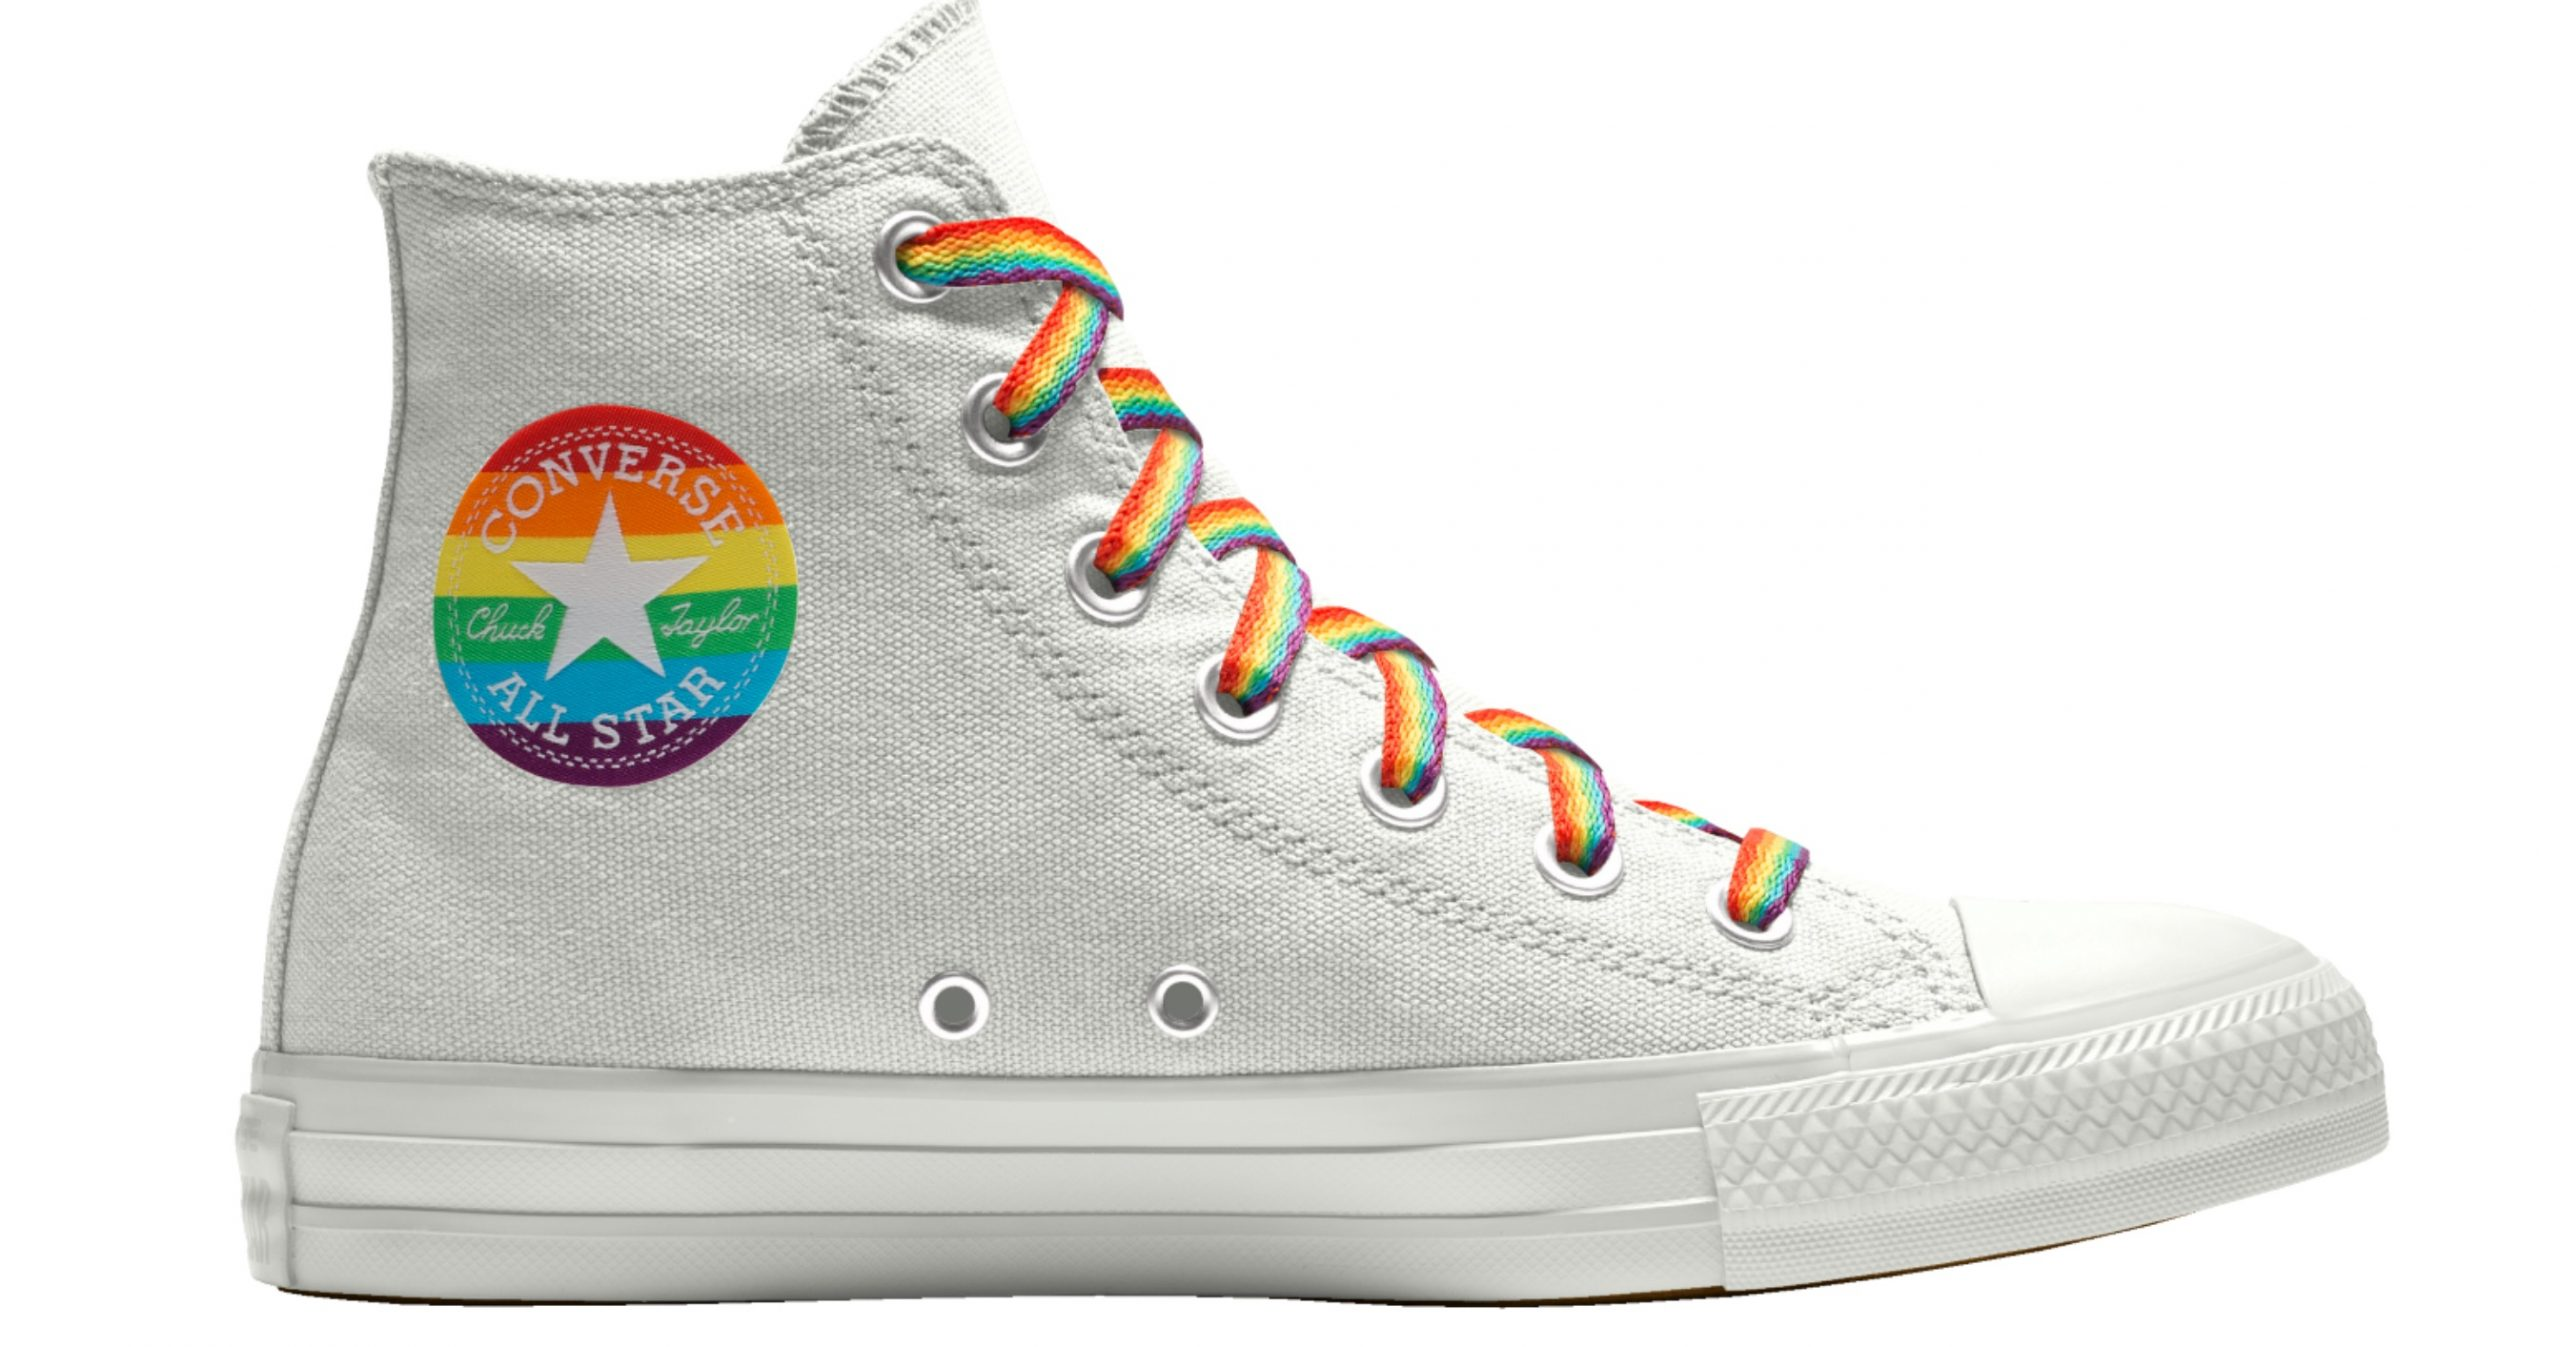 You can grab rainbow striped Chuck Taylors as a holiday